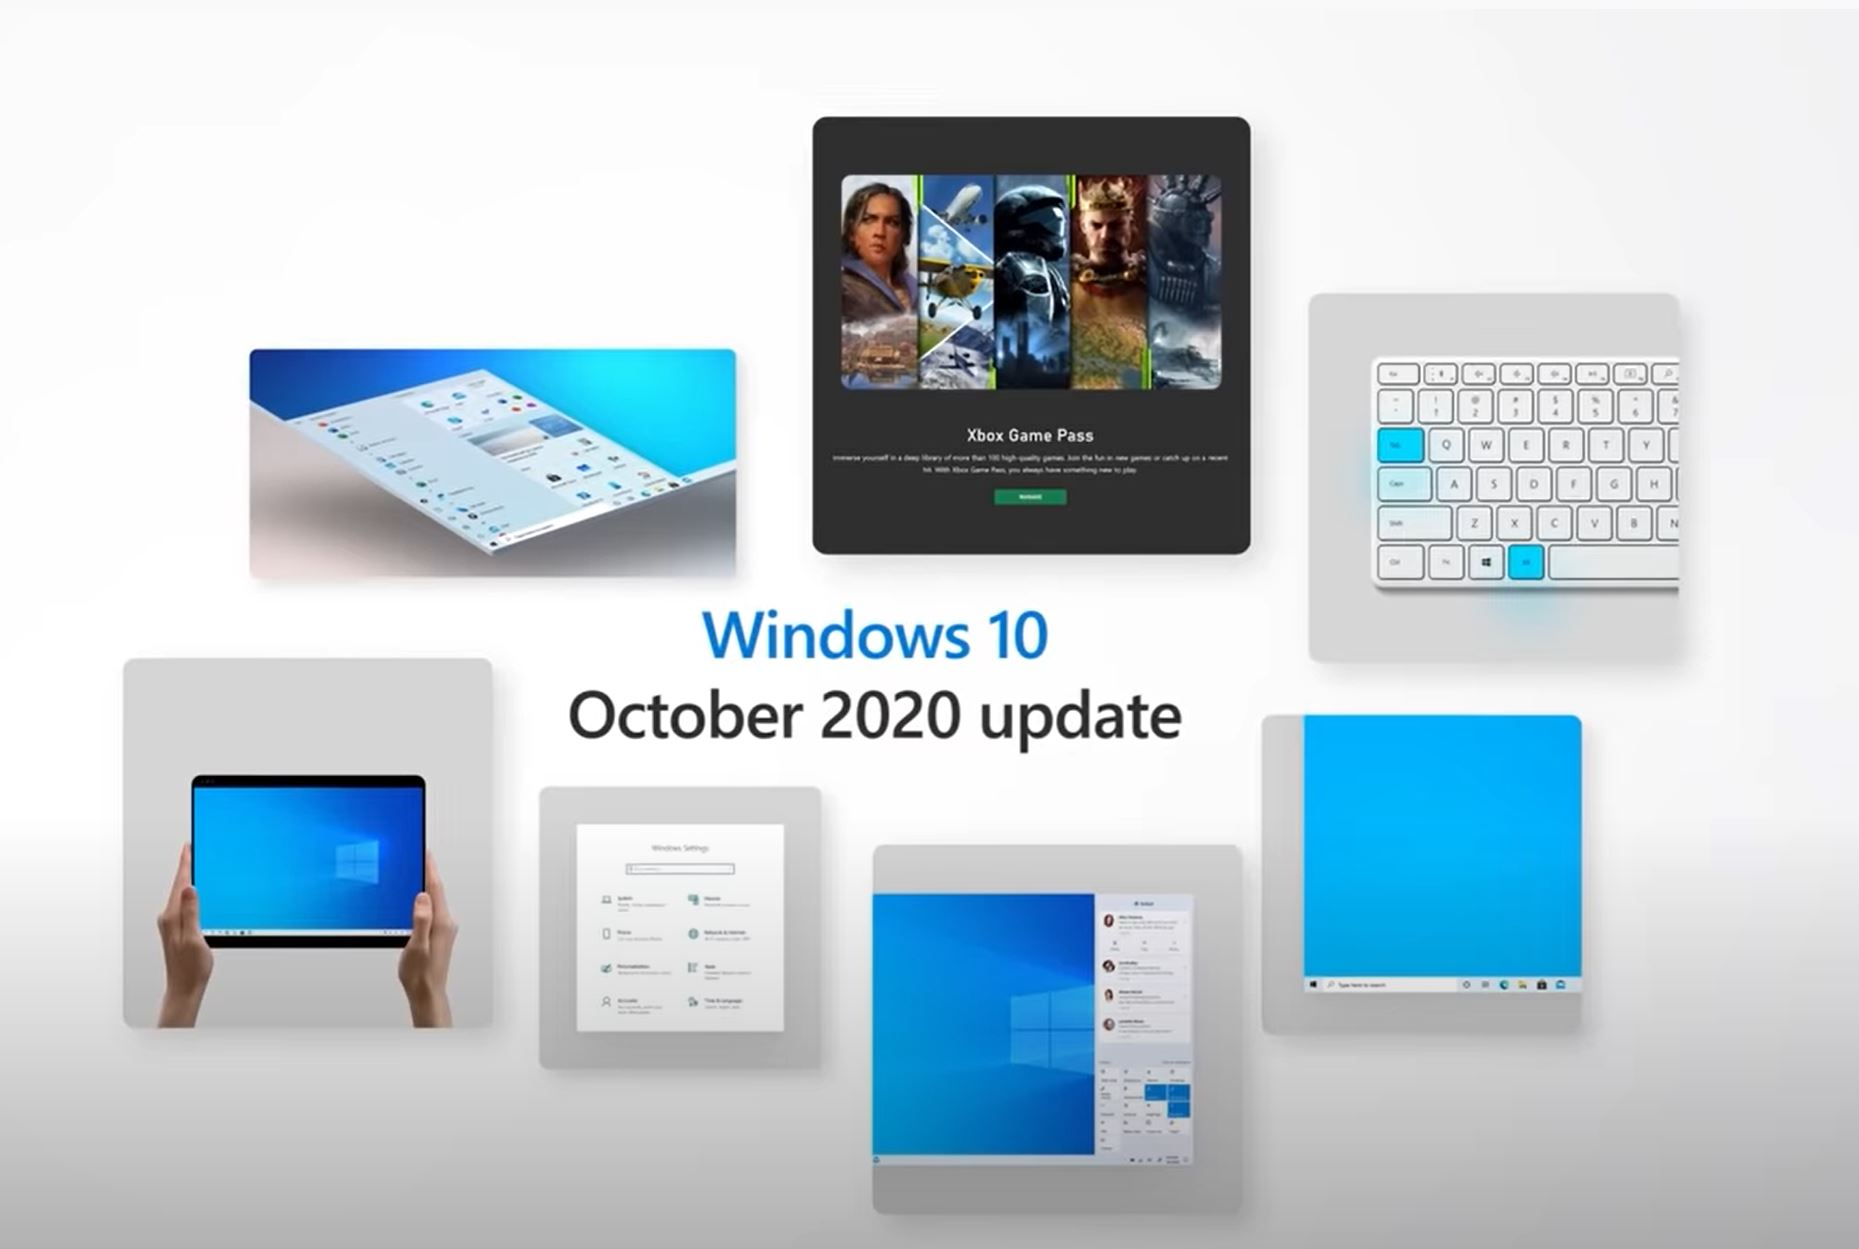 Windows 10 October 2020 update known issues